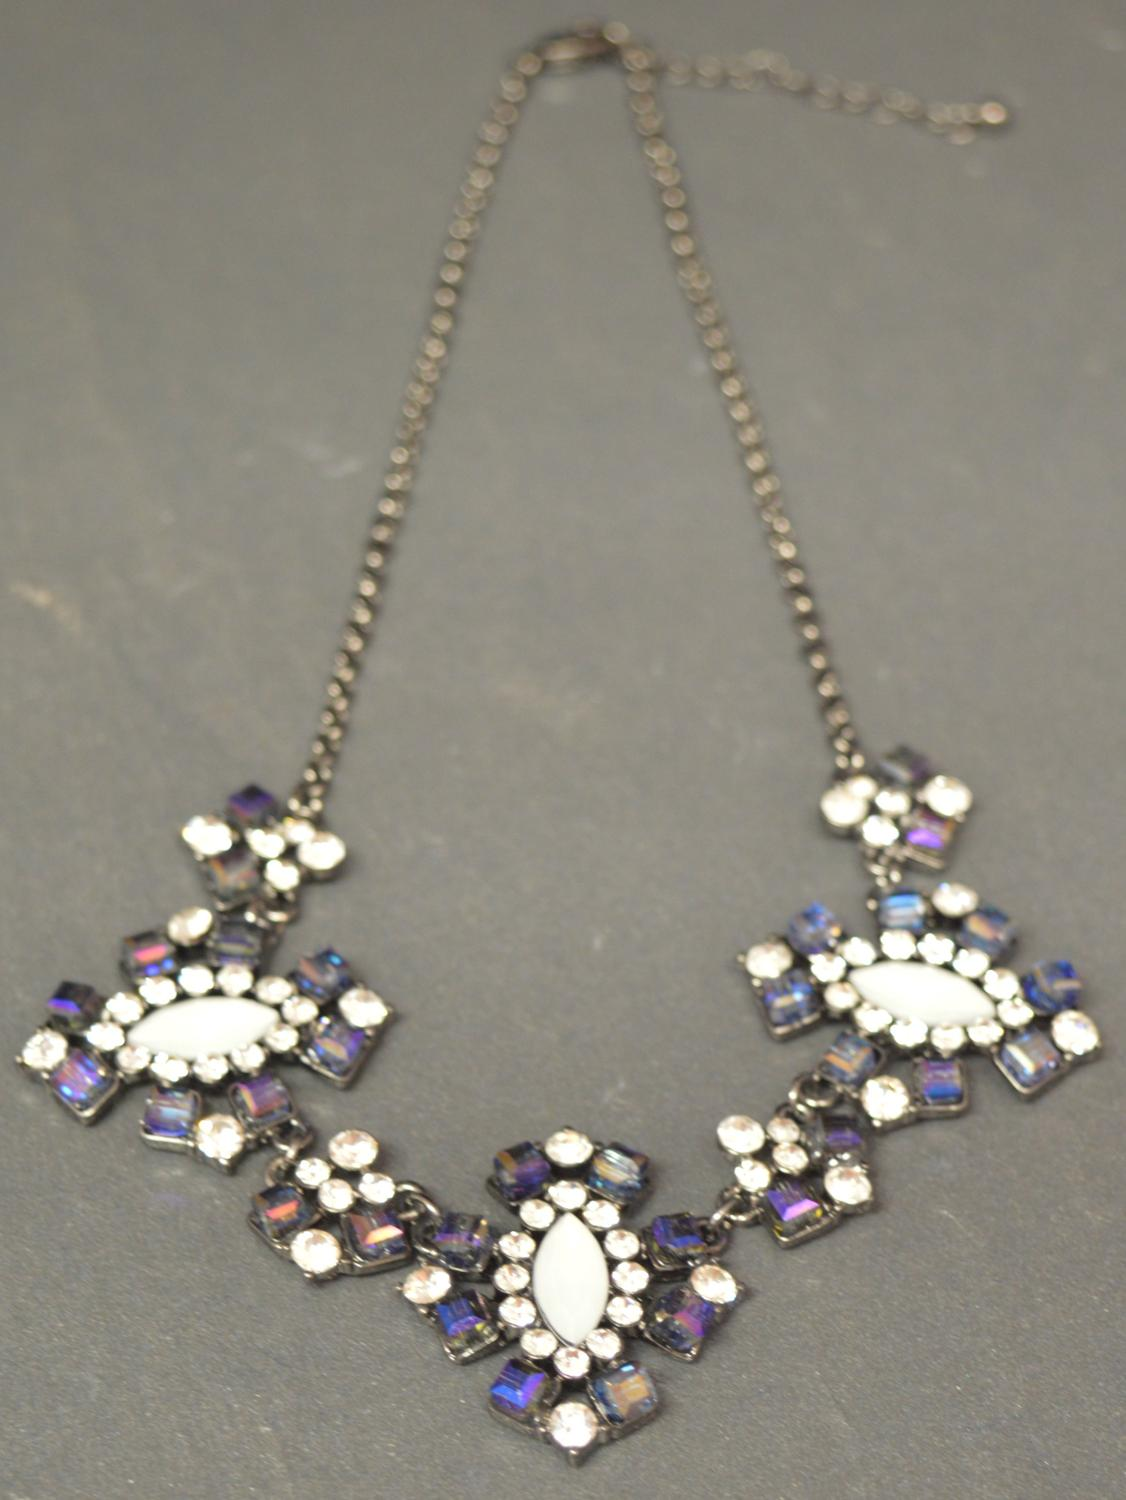 Blue and Opaque Flower Style Necklace